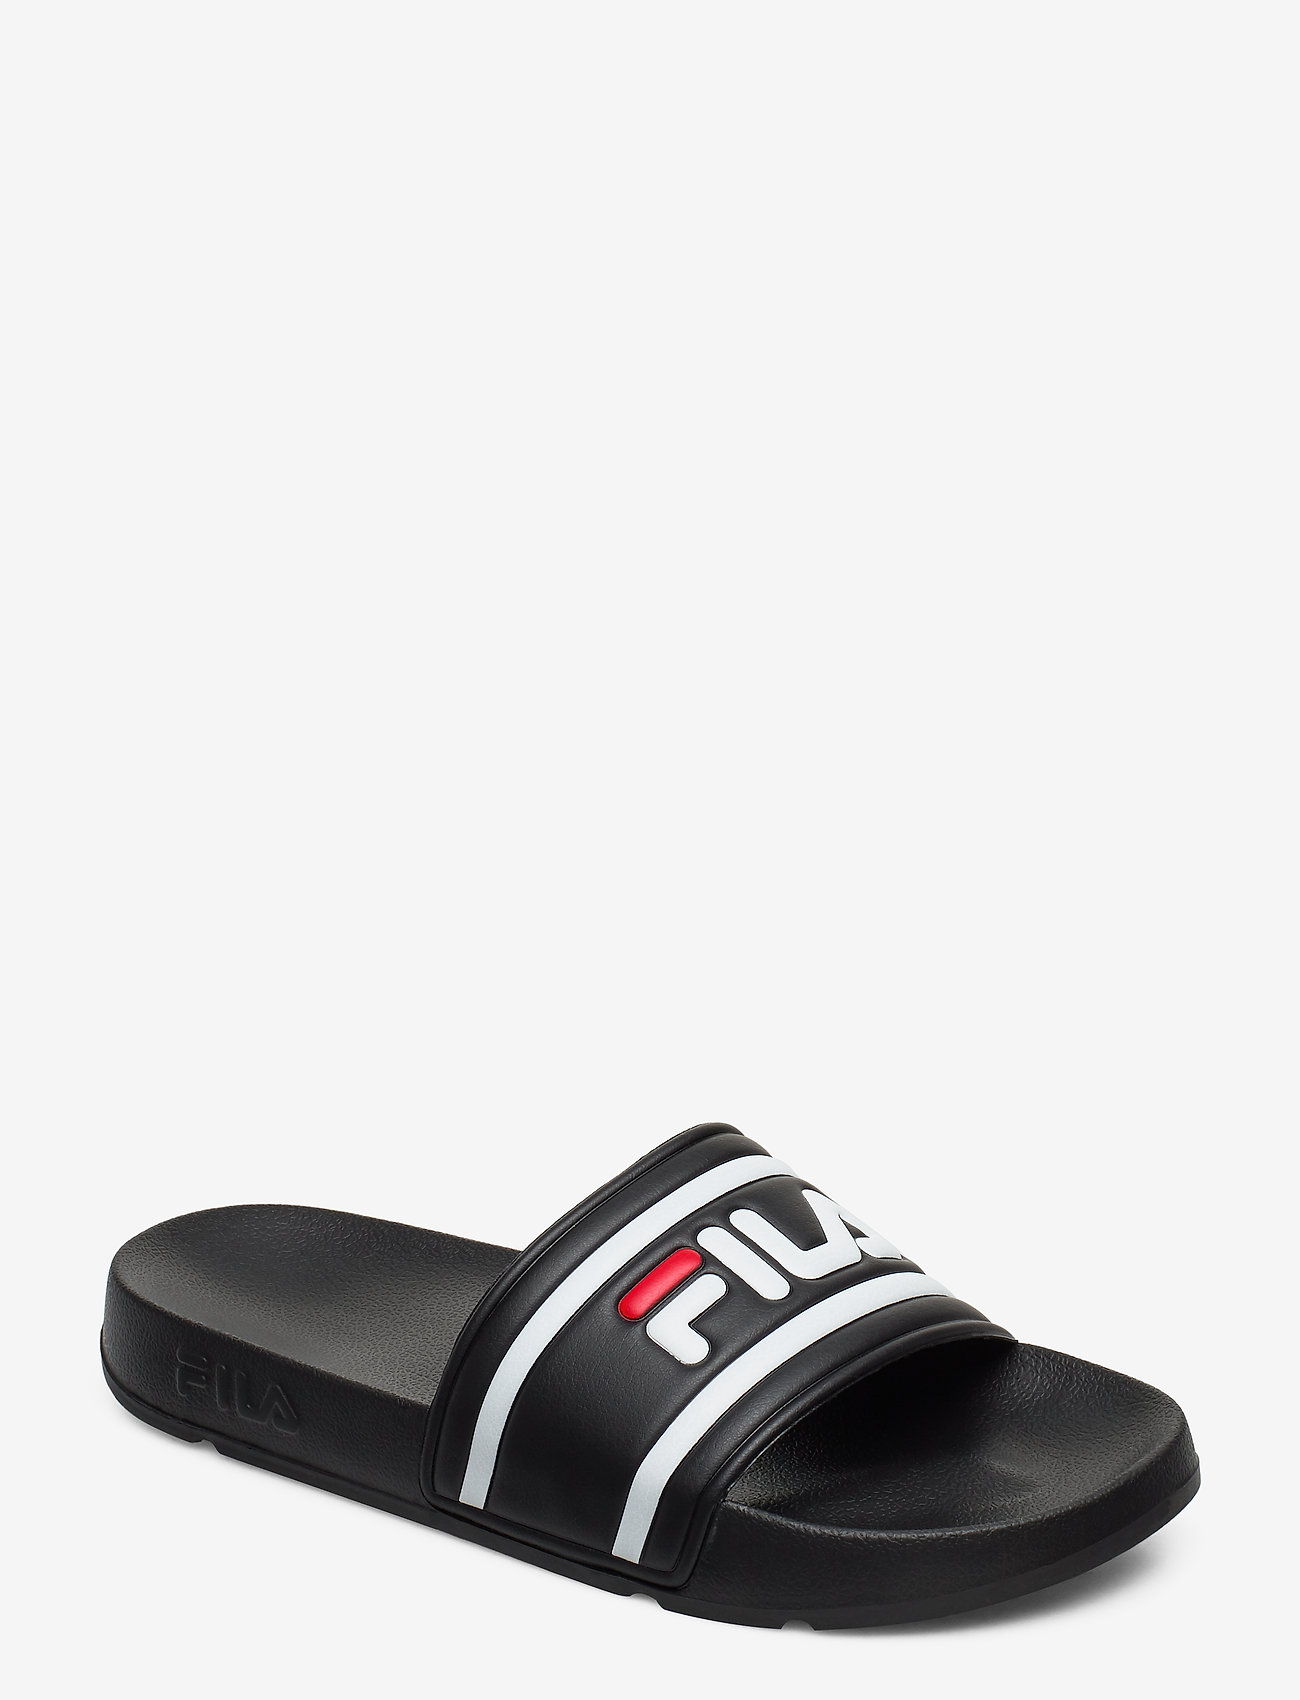 FILA - Morro Bay slipper 2.0 - pool sliders - black - 0